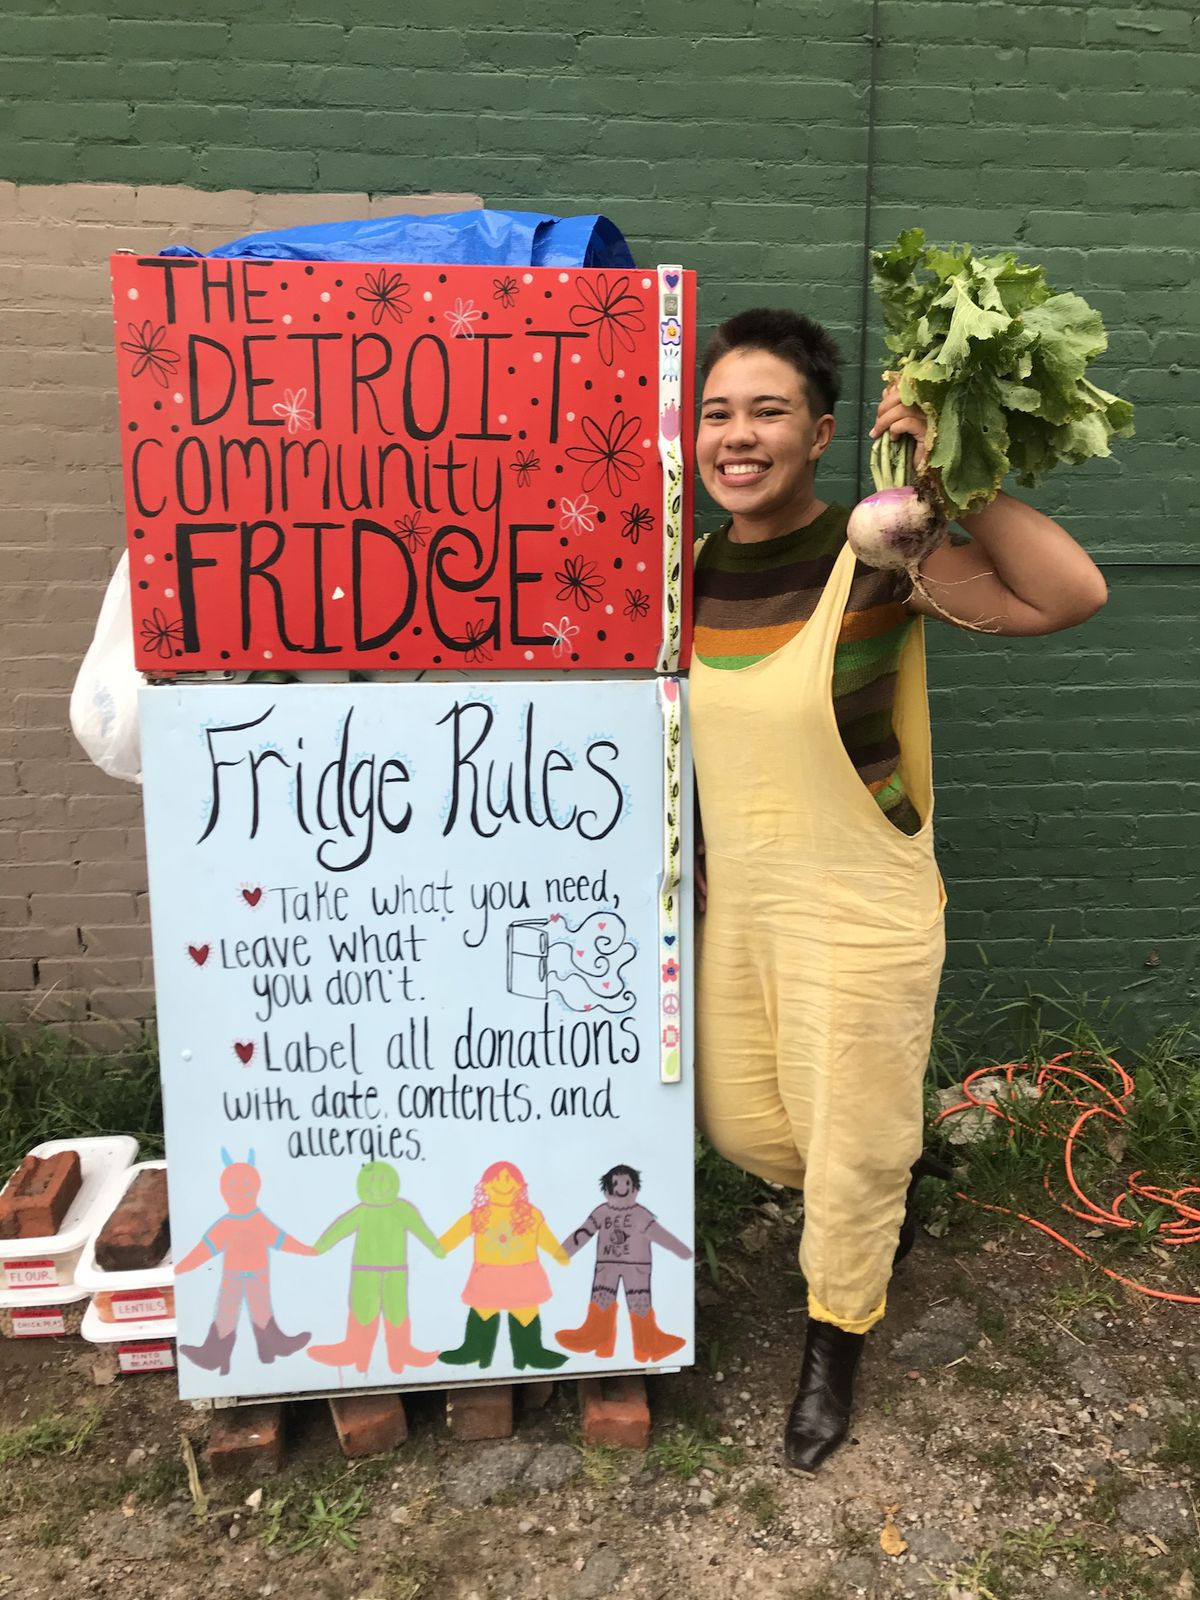 """A person holding up a turnip with greens stands beside a sign that reads """"The Detroit community fridge. Fridge rules: Take what you need, leave what you don't. Label all donations with date and contents and allergies."""""""